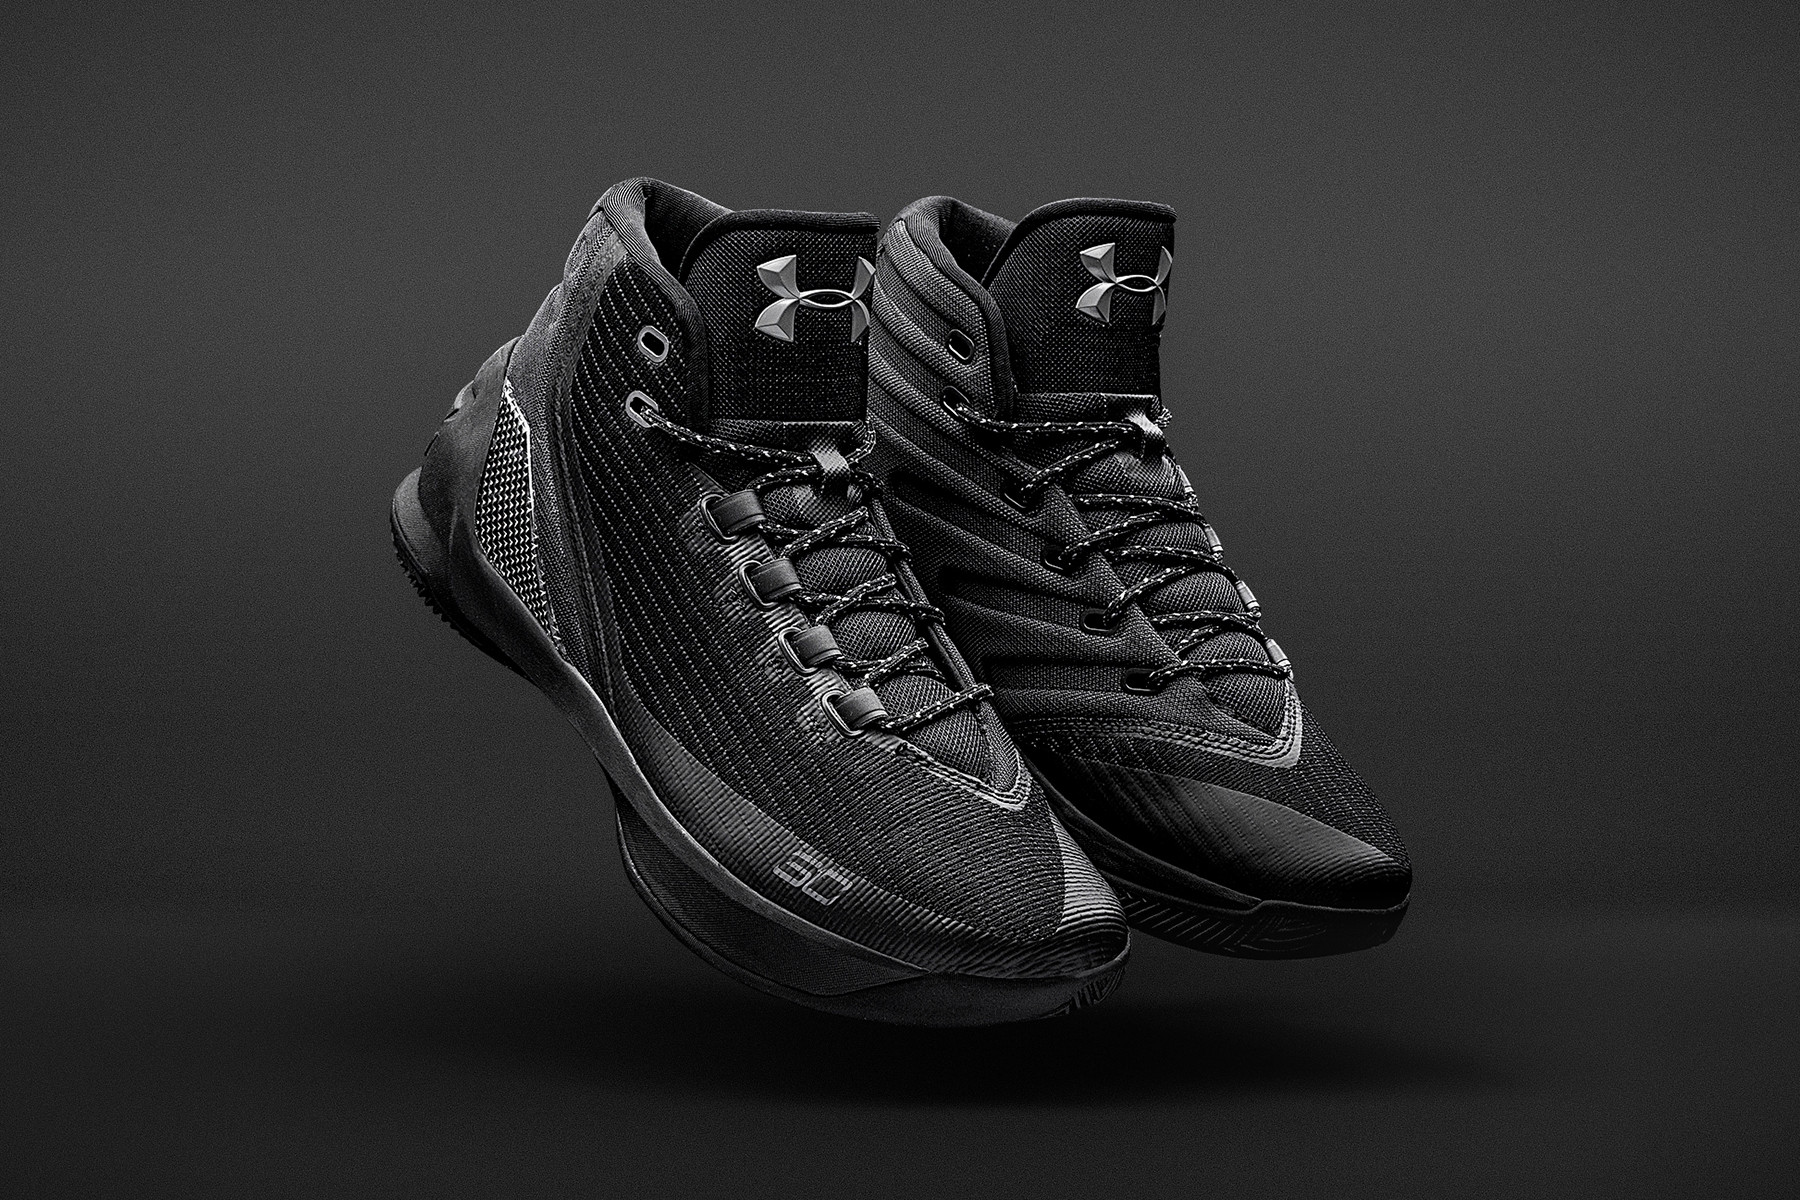 Under Armour Curry 3 Trifecta Black Is